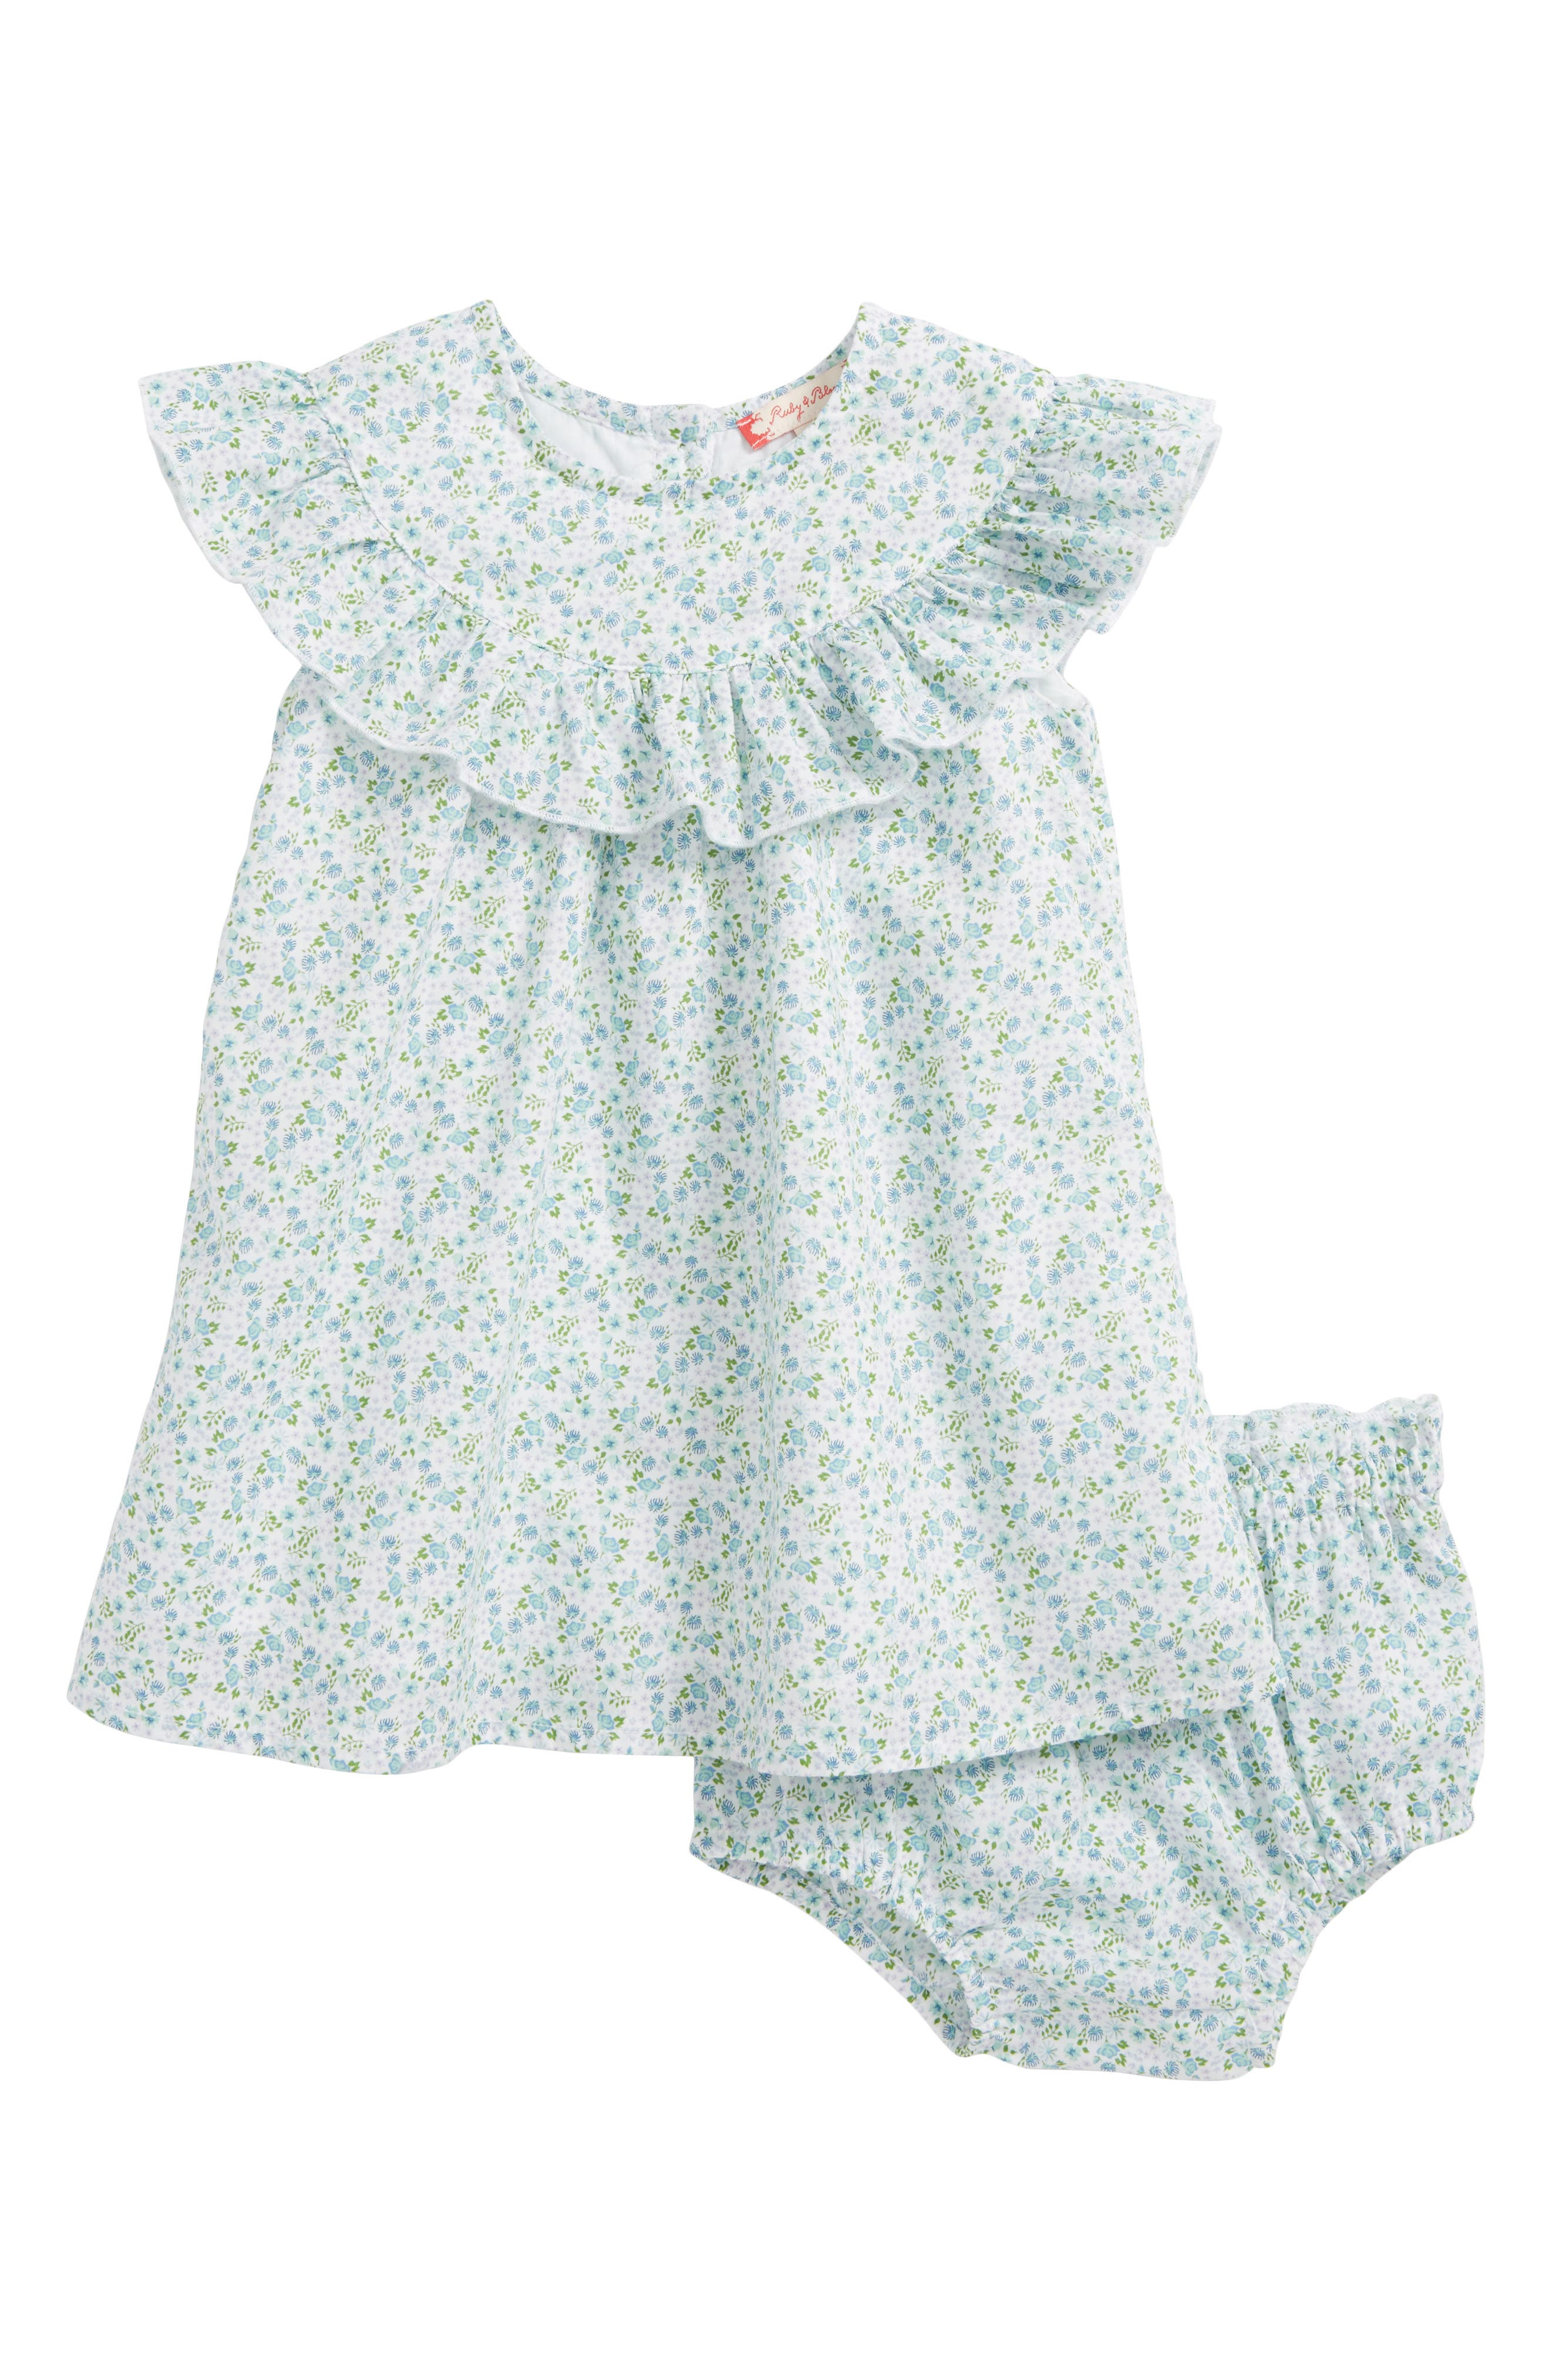 Ruby & Bloom Ruffle Dress (Baby Girls)